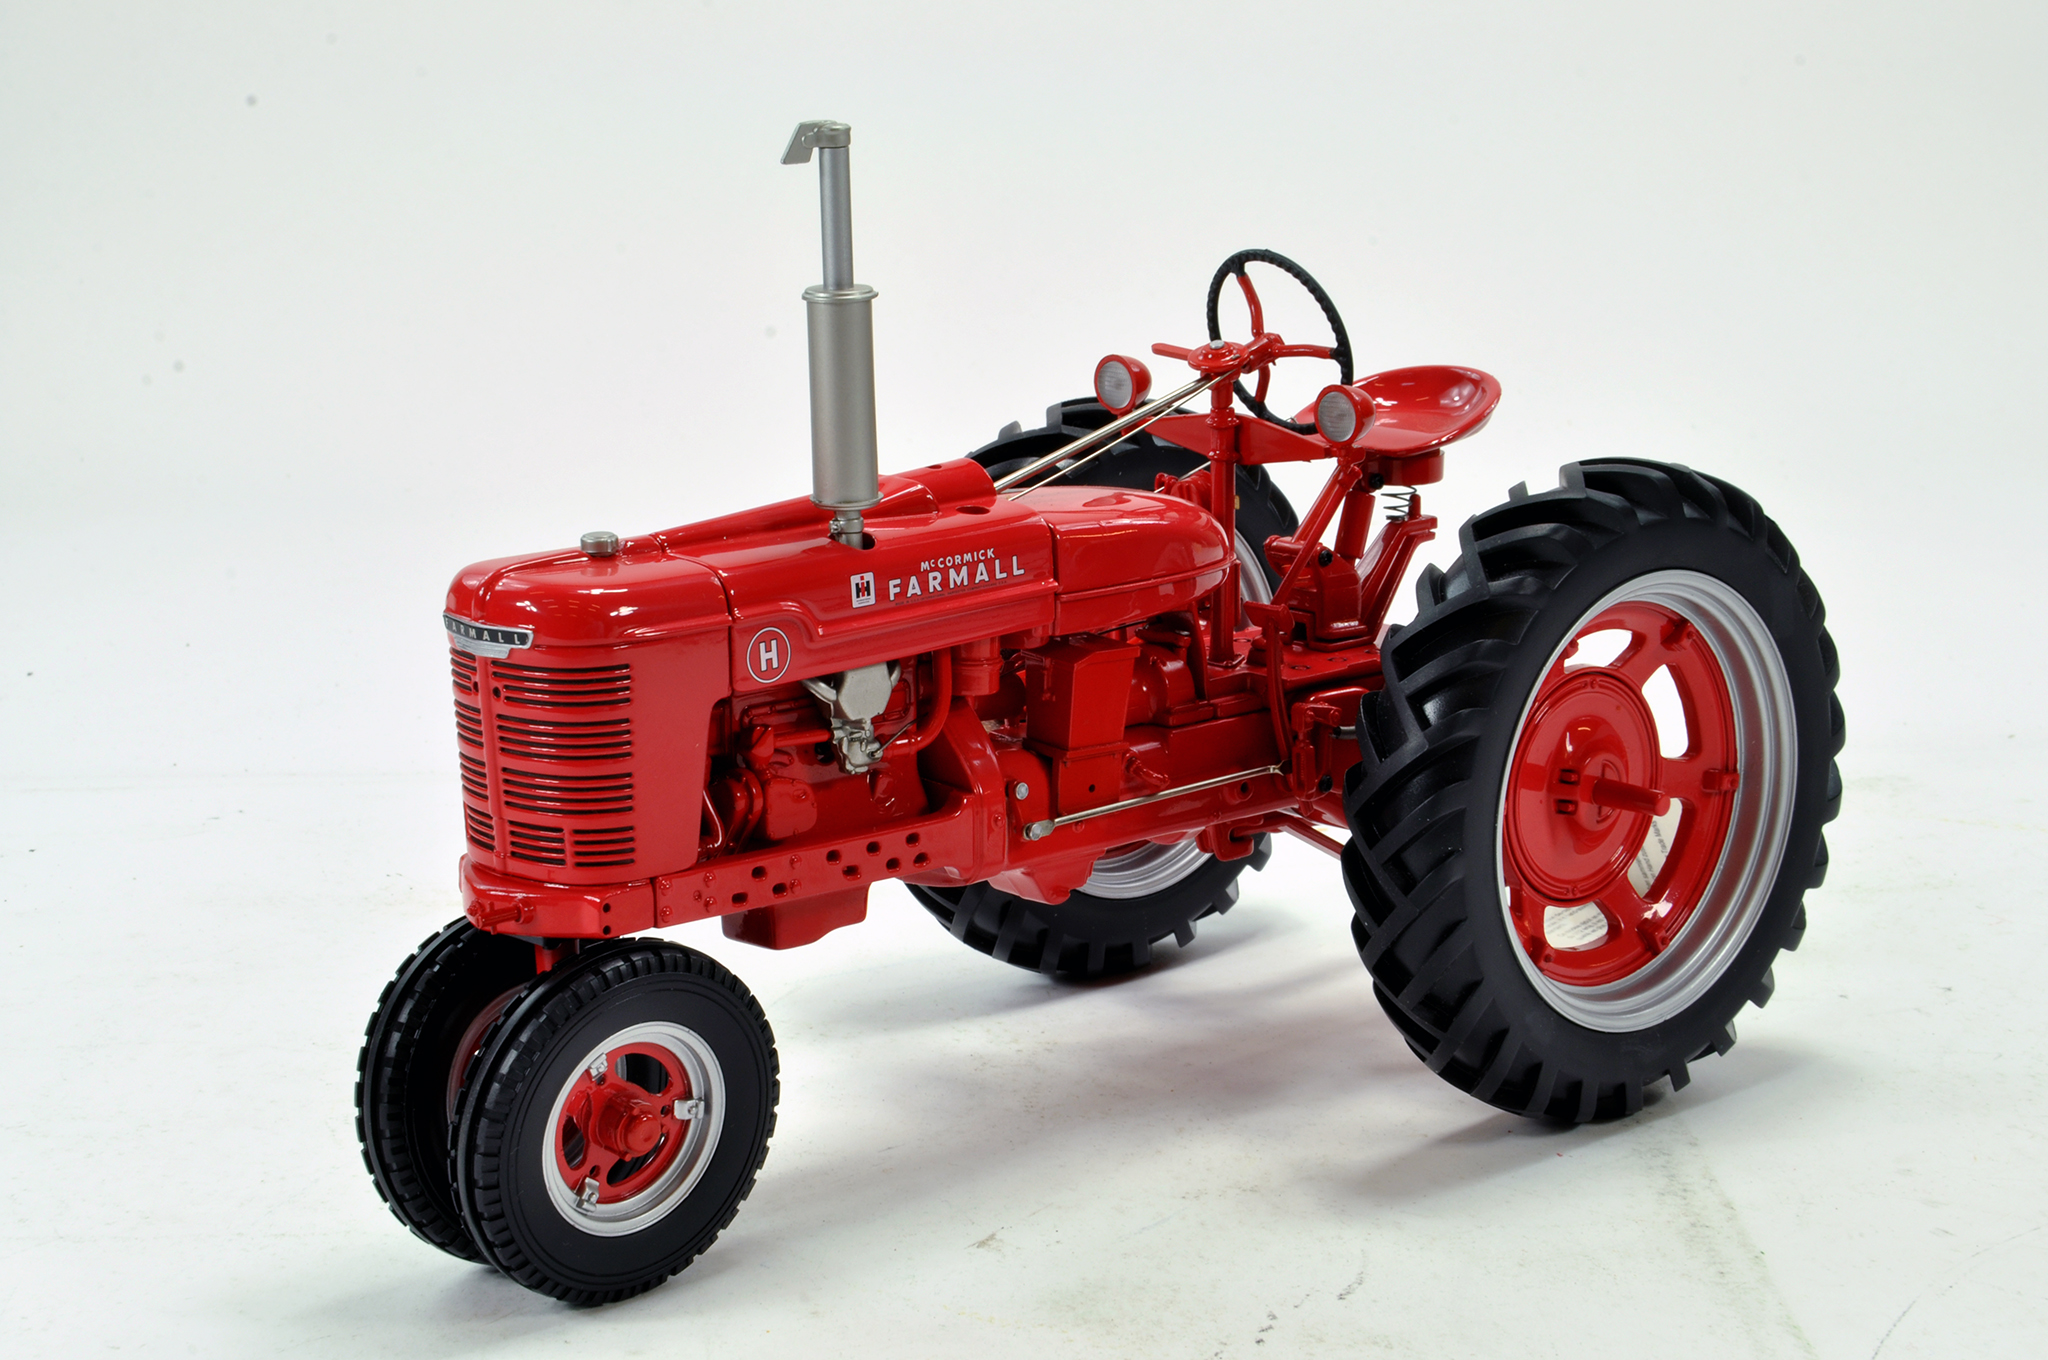 Lot 545 - Franklin Mint 1/12 Precision Issue Farmall H Tractor. Missing pre-cleaner otherwise Excellent.